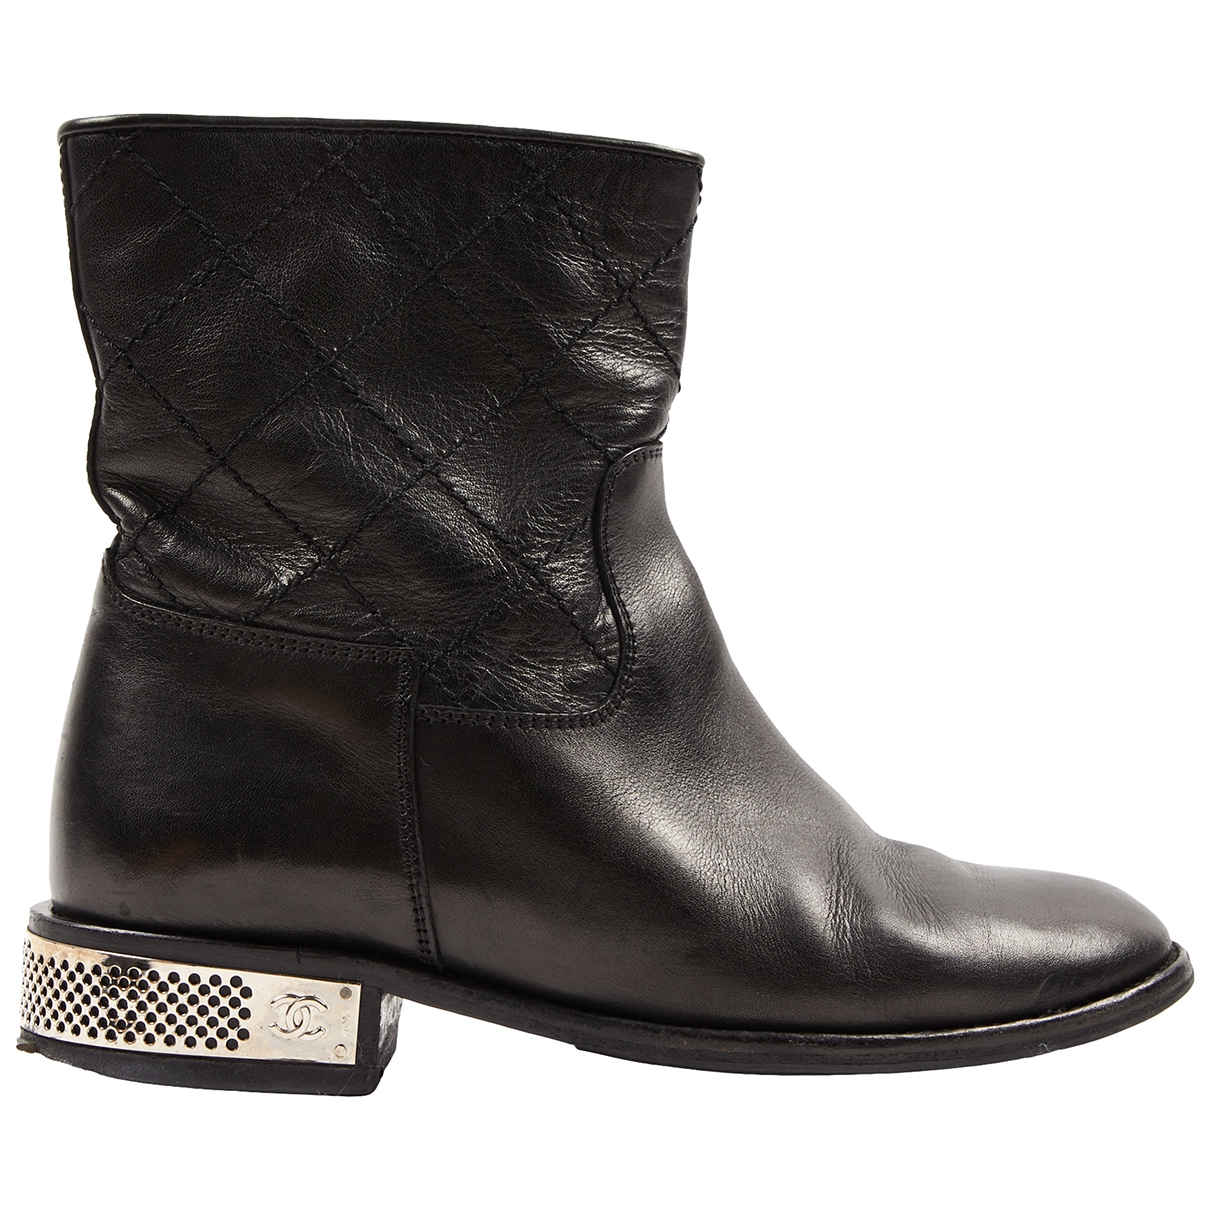 Chanel \N Black Leather Ankle boots for Women 36 EU